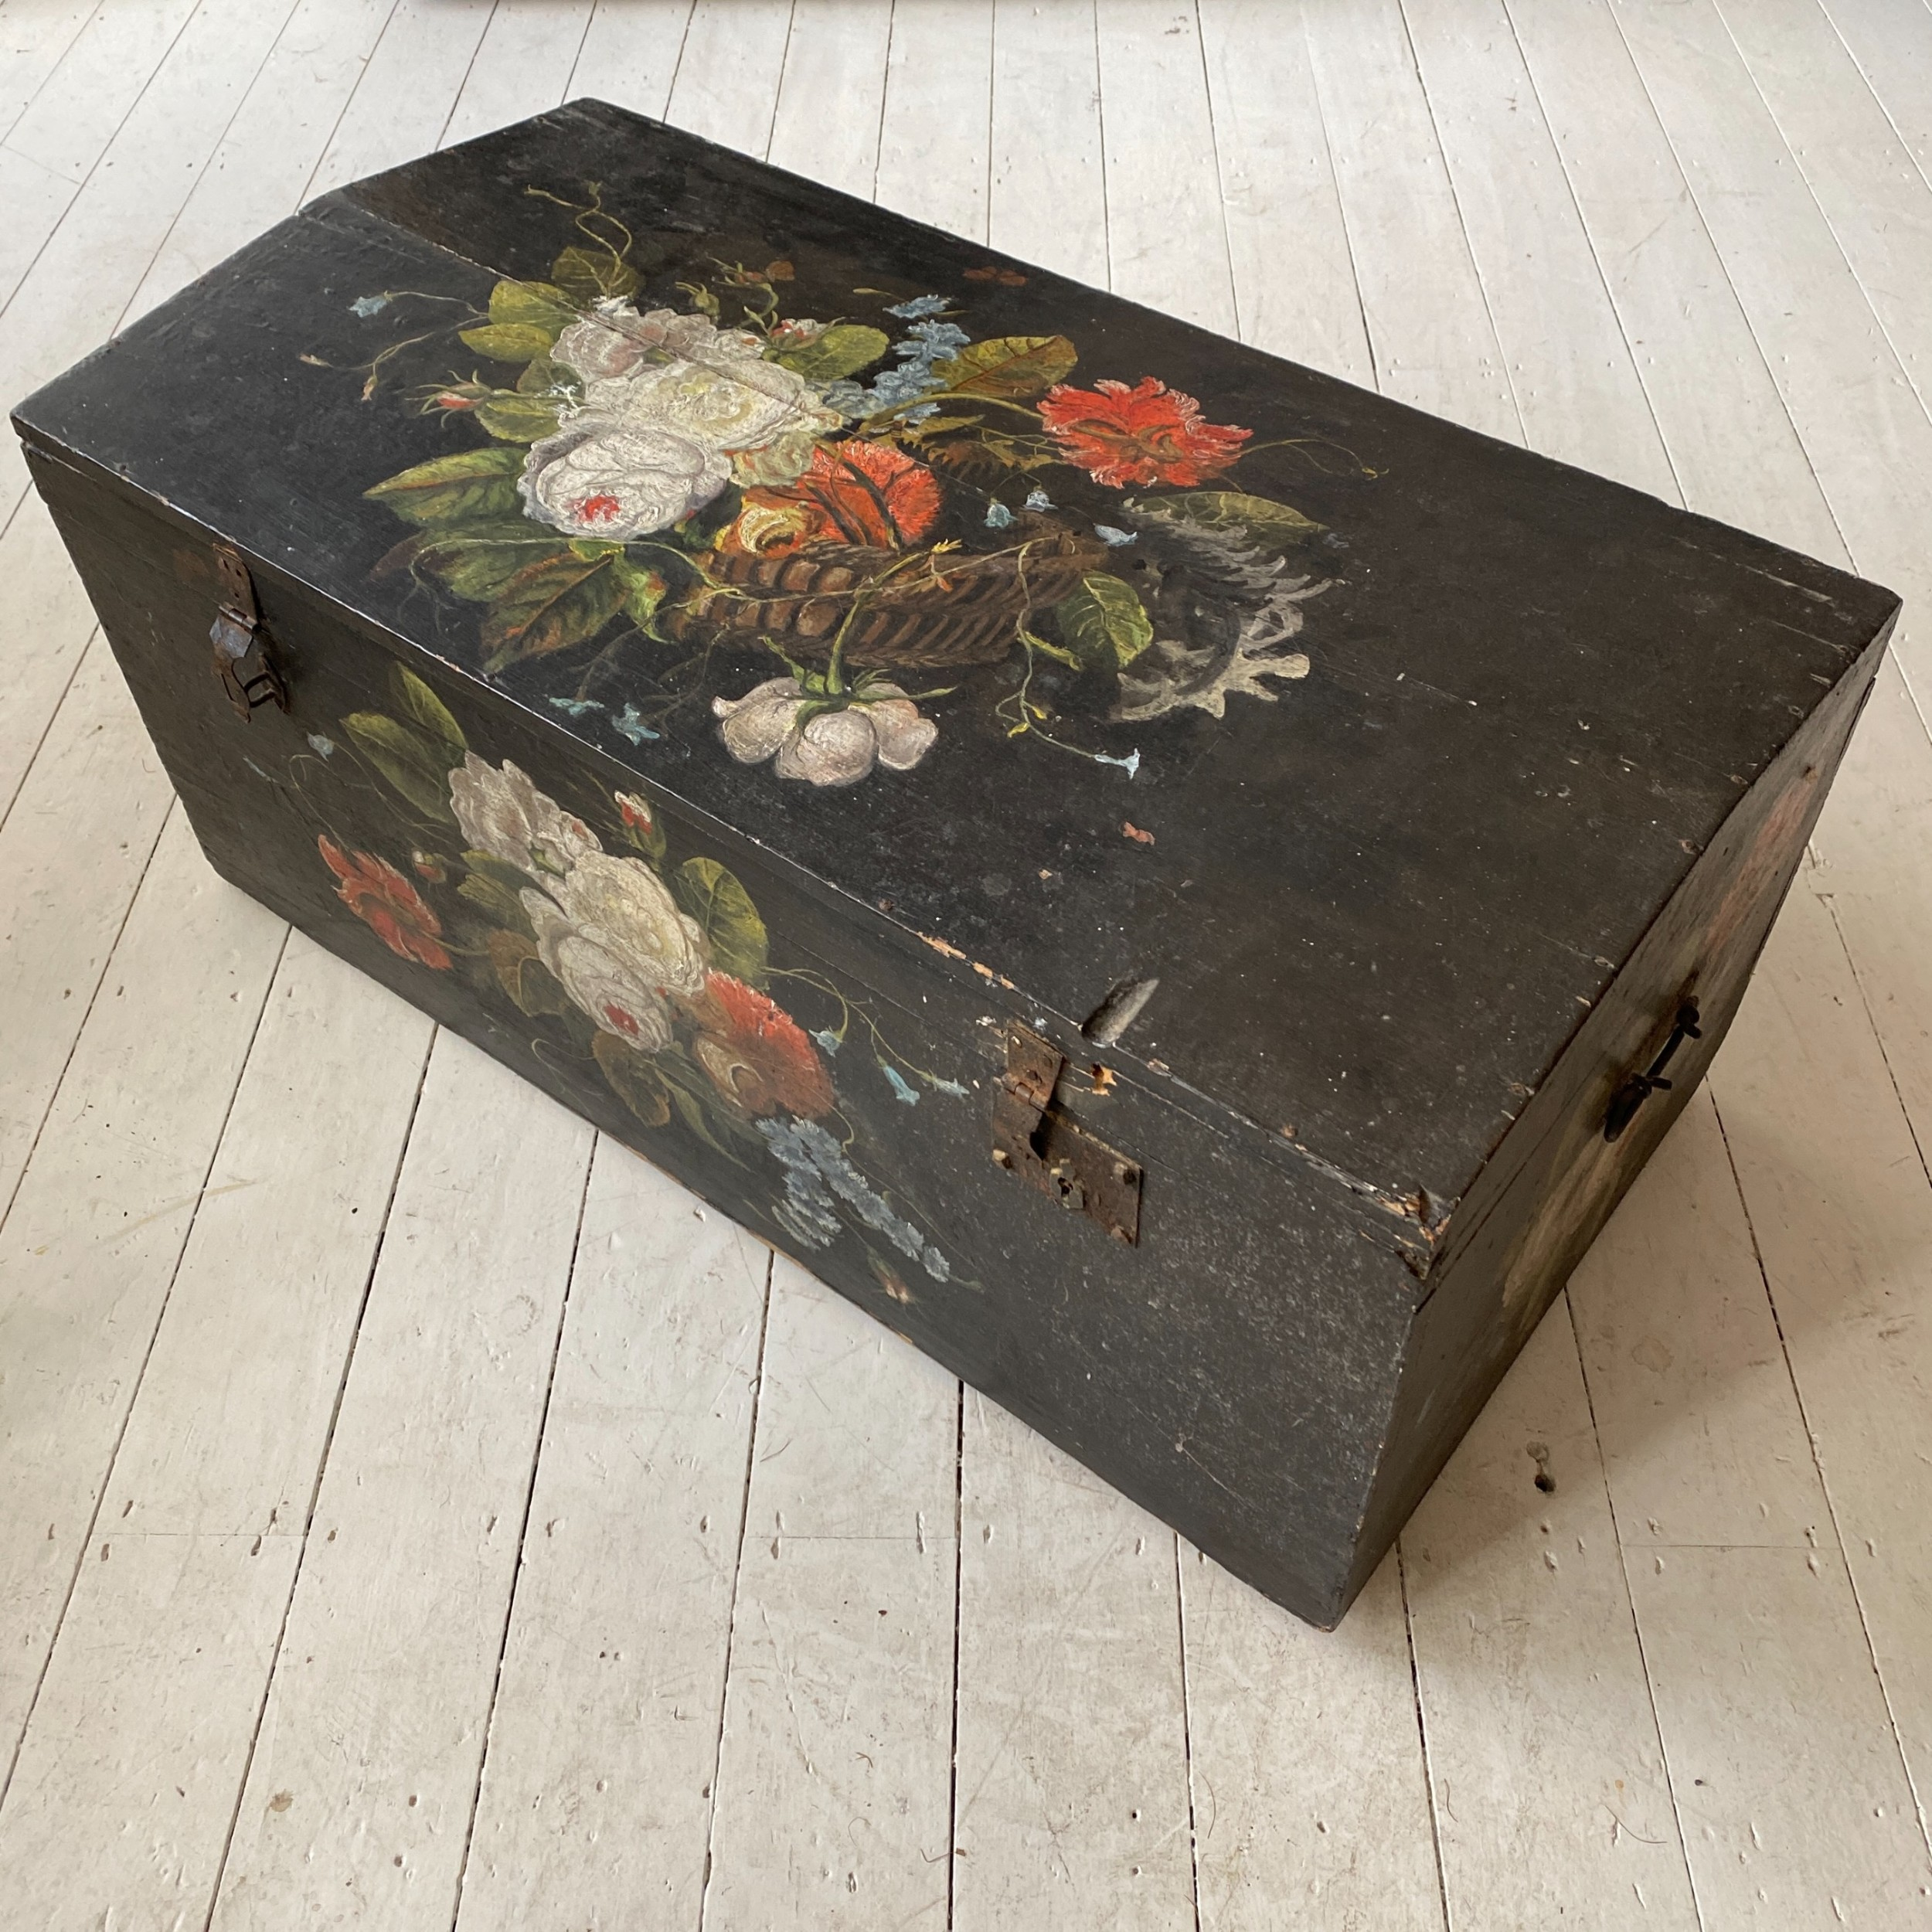 19th century ebonised and painted pine trunk